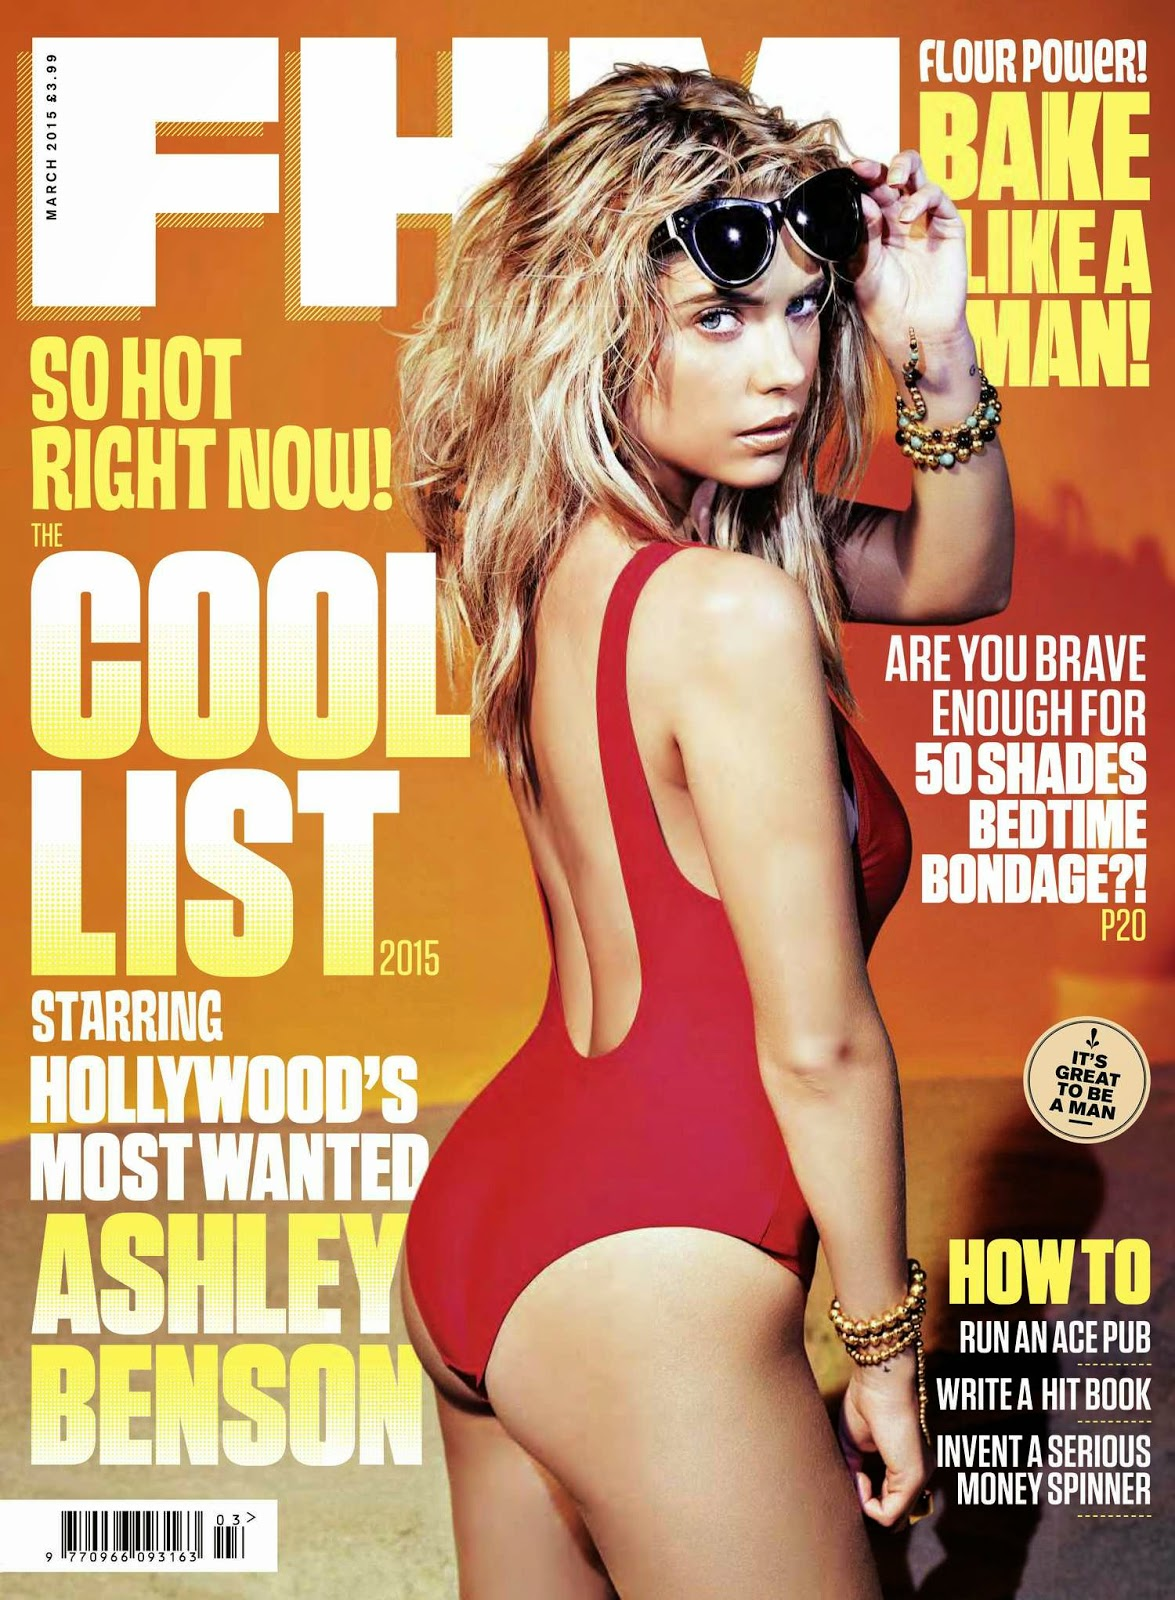 Actress, Model: Ashley Benson for FHM UK